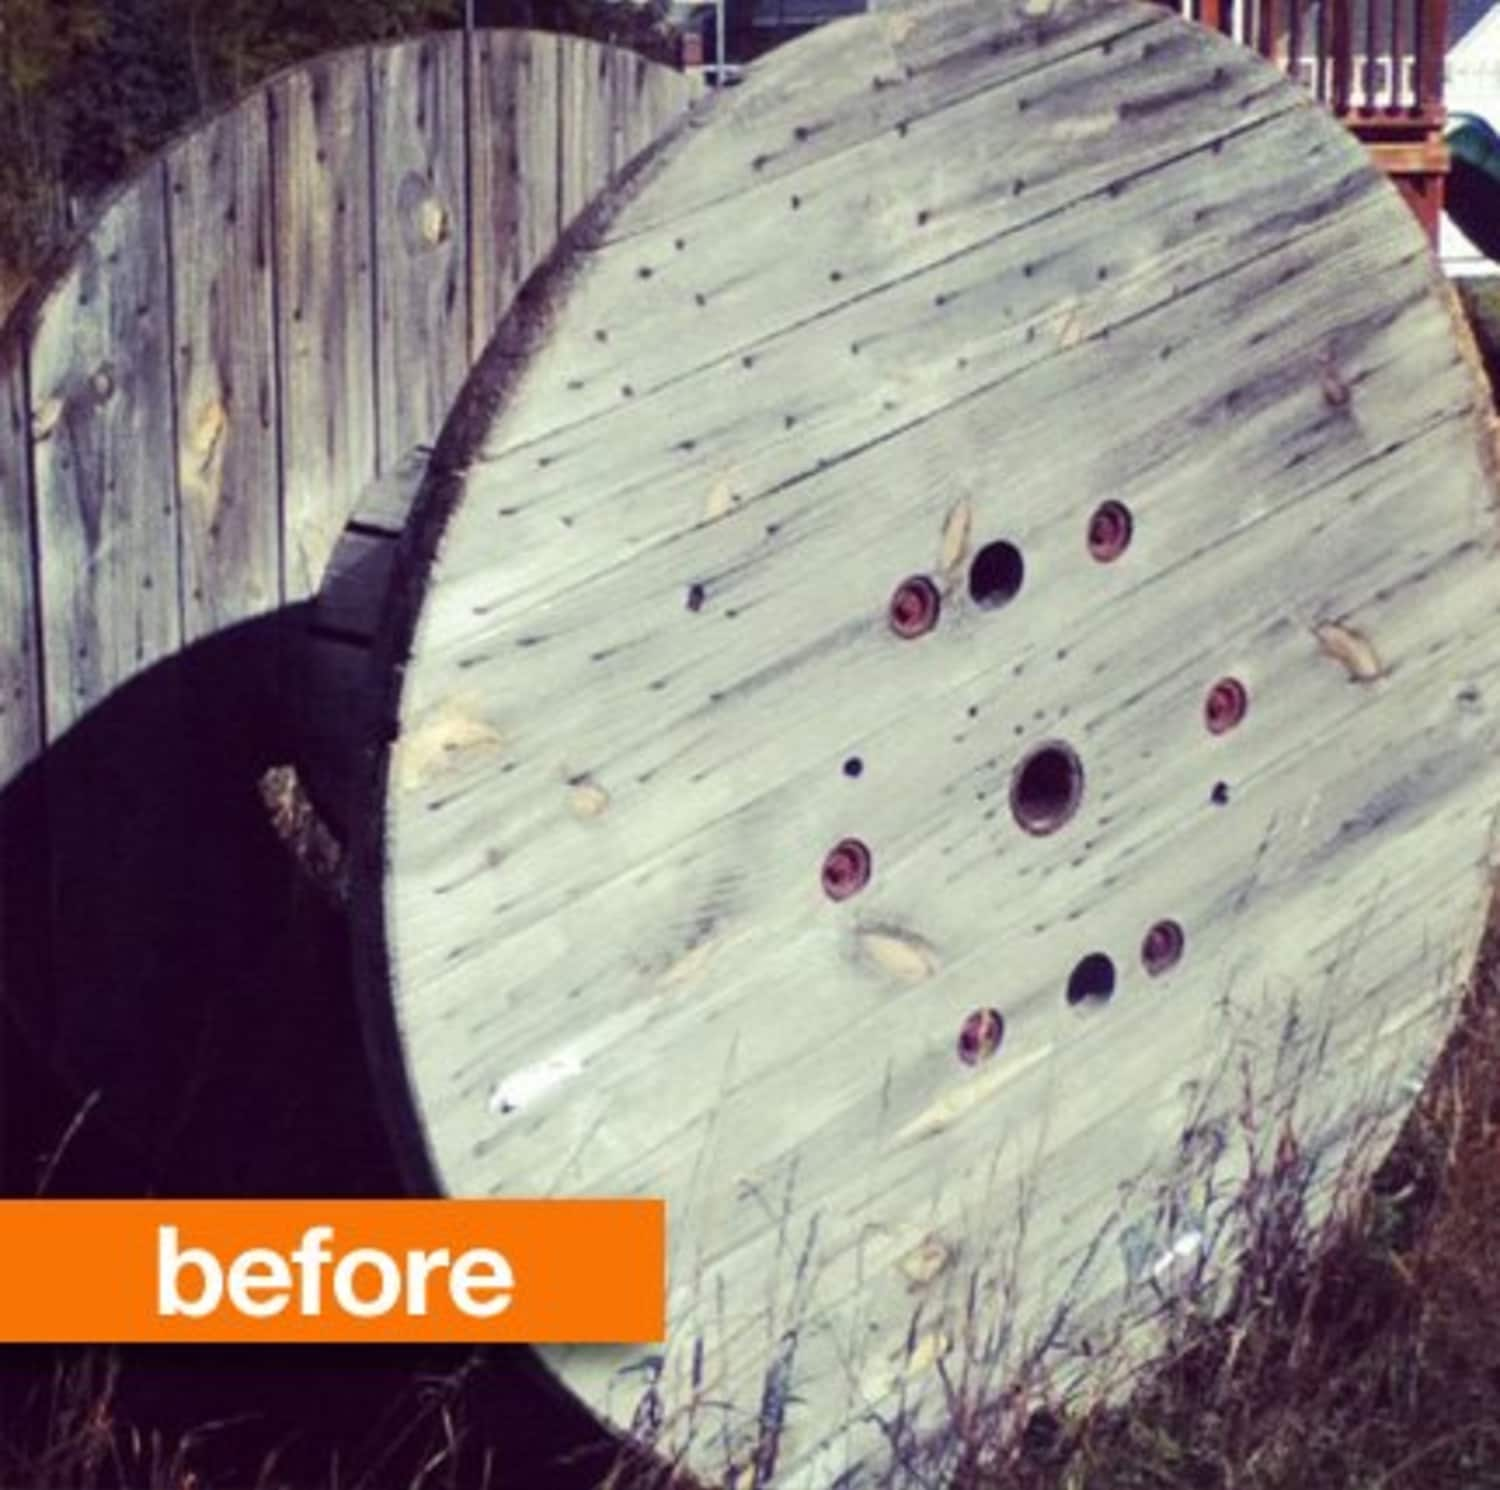 Before & After: A Wooden Spool Gets Really Cool